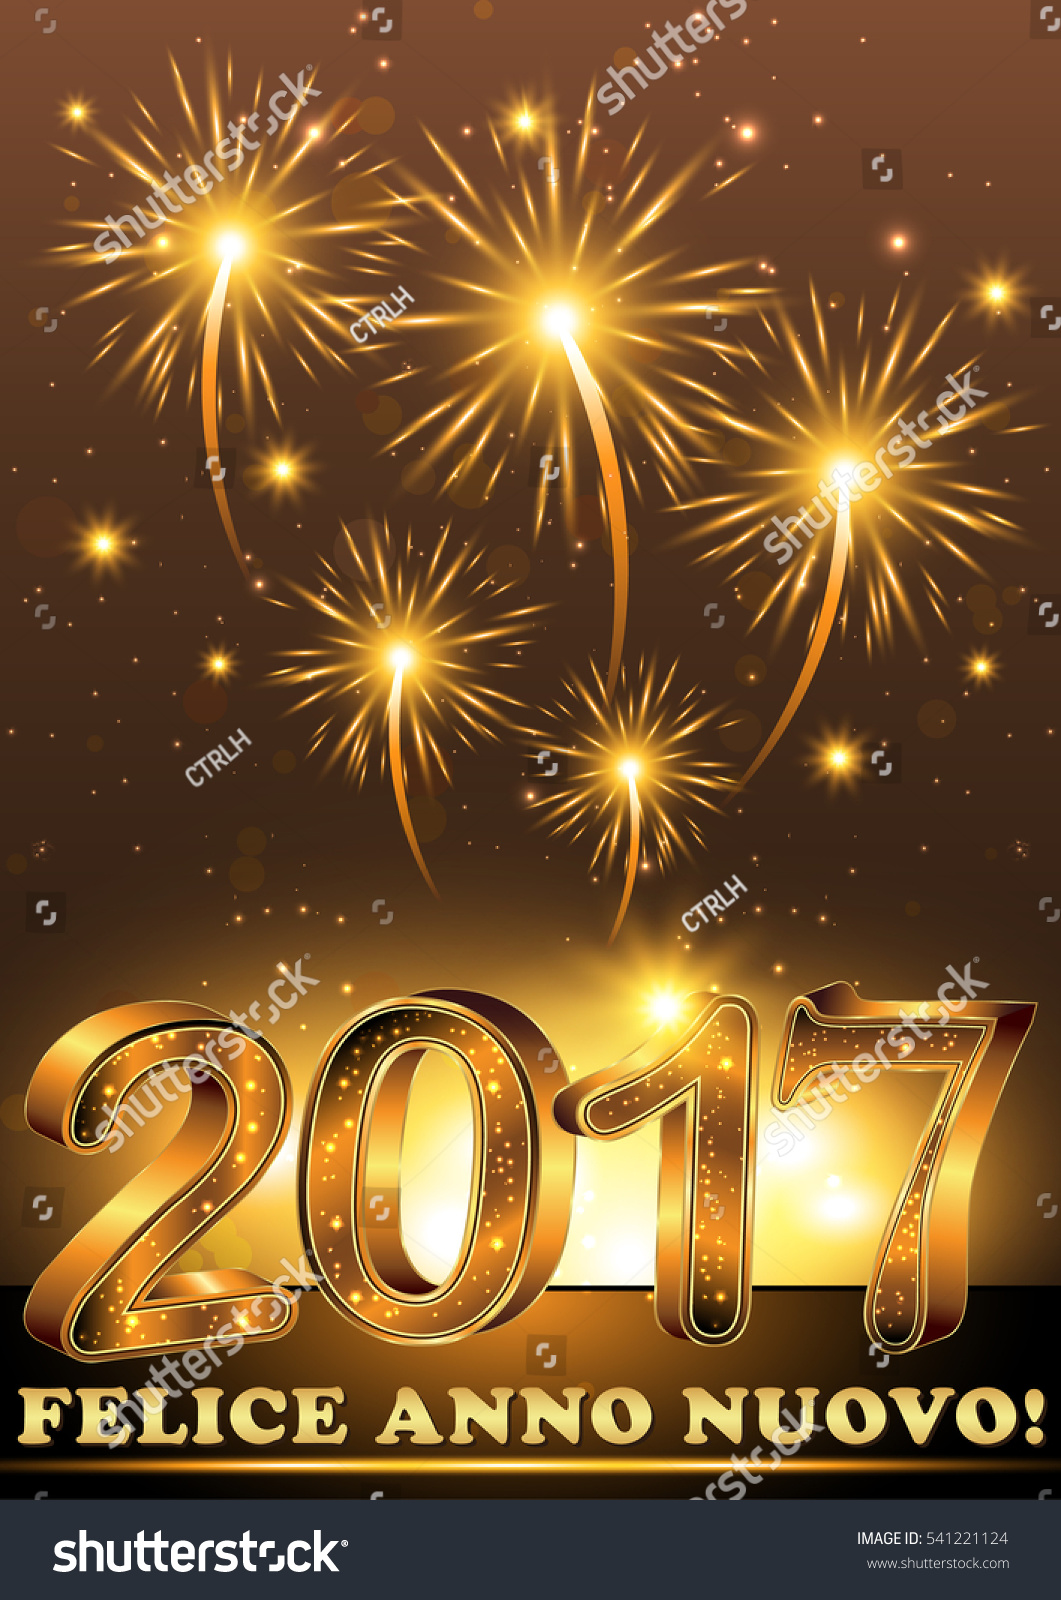 Happy new year 2017 italian language stock illustration 541221124 happy new year 2017 italian language felice anno nuovo elegant m4hsunfo